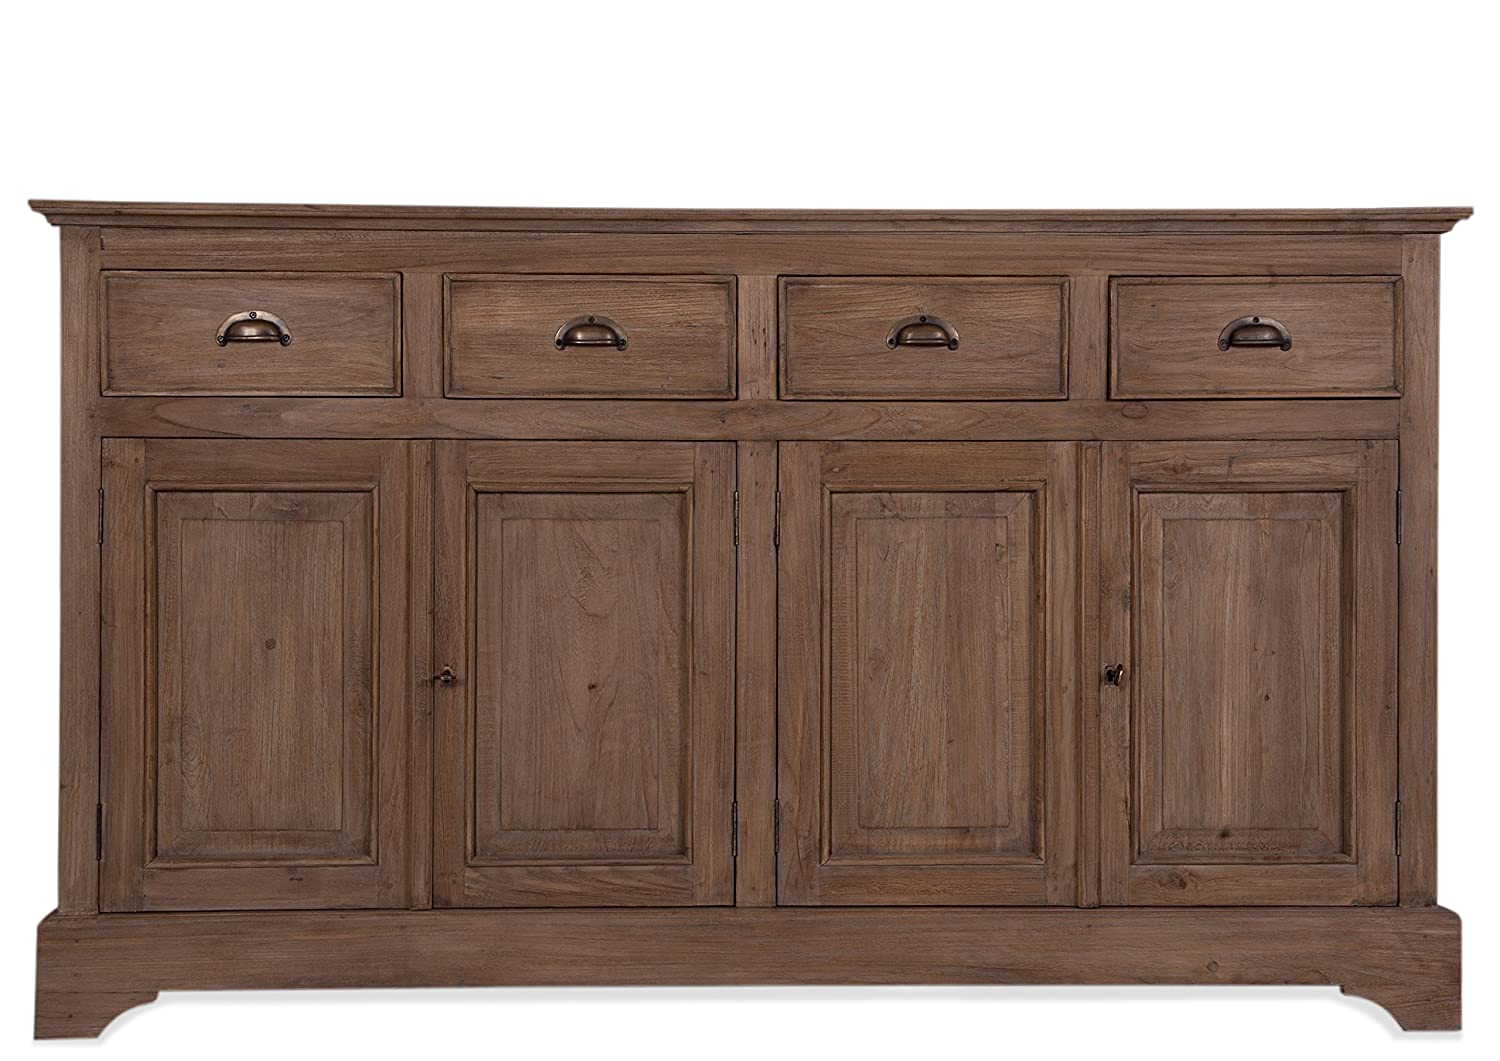 SIT-Möbel 7913-01 Sideboard